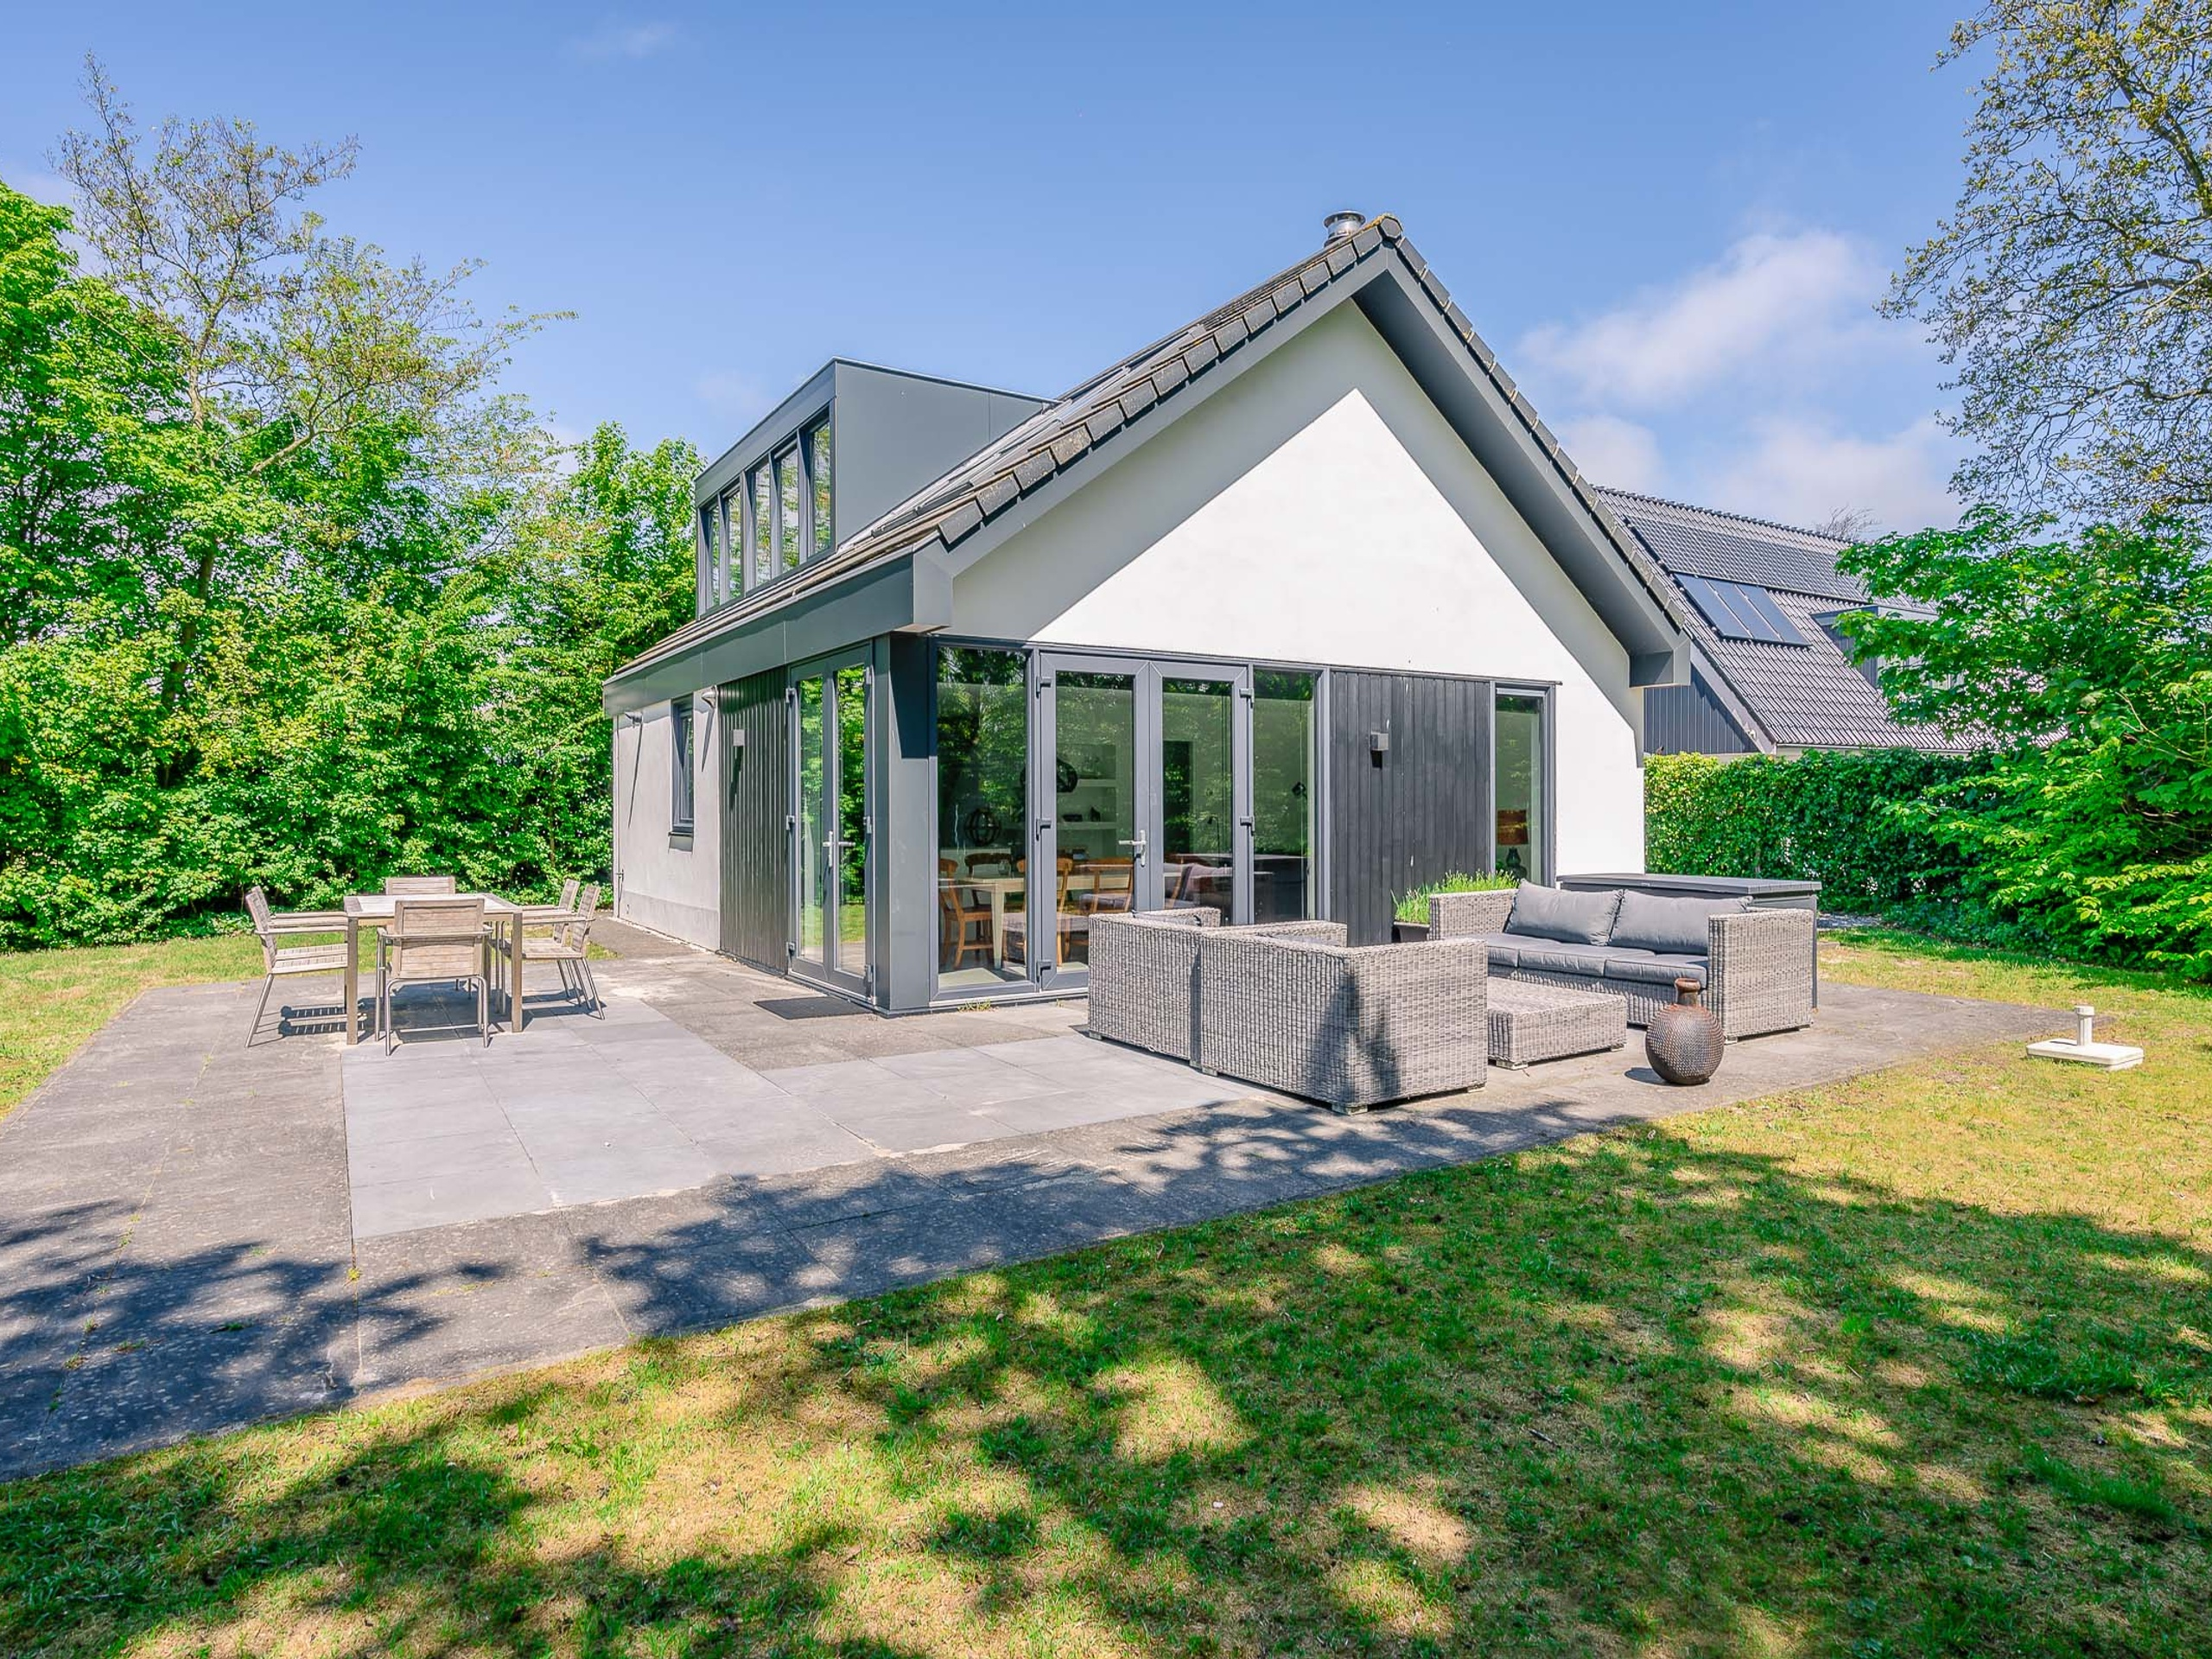 Luxury holiday villa on a small-scale holiday park near the beach of Texel